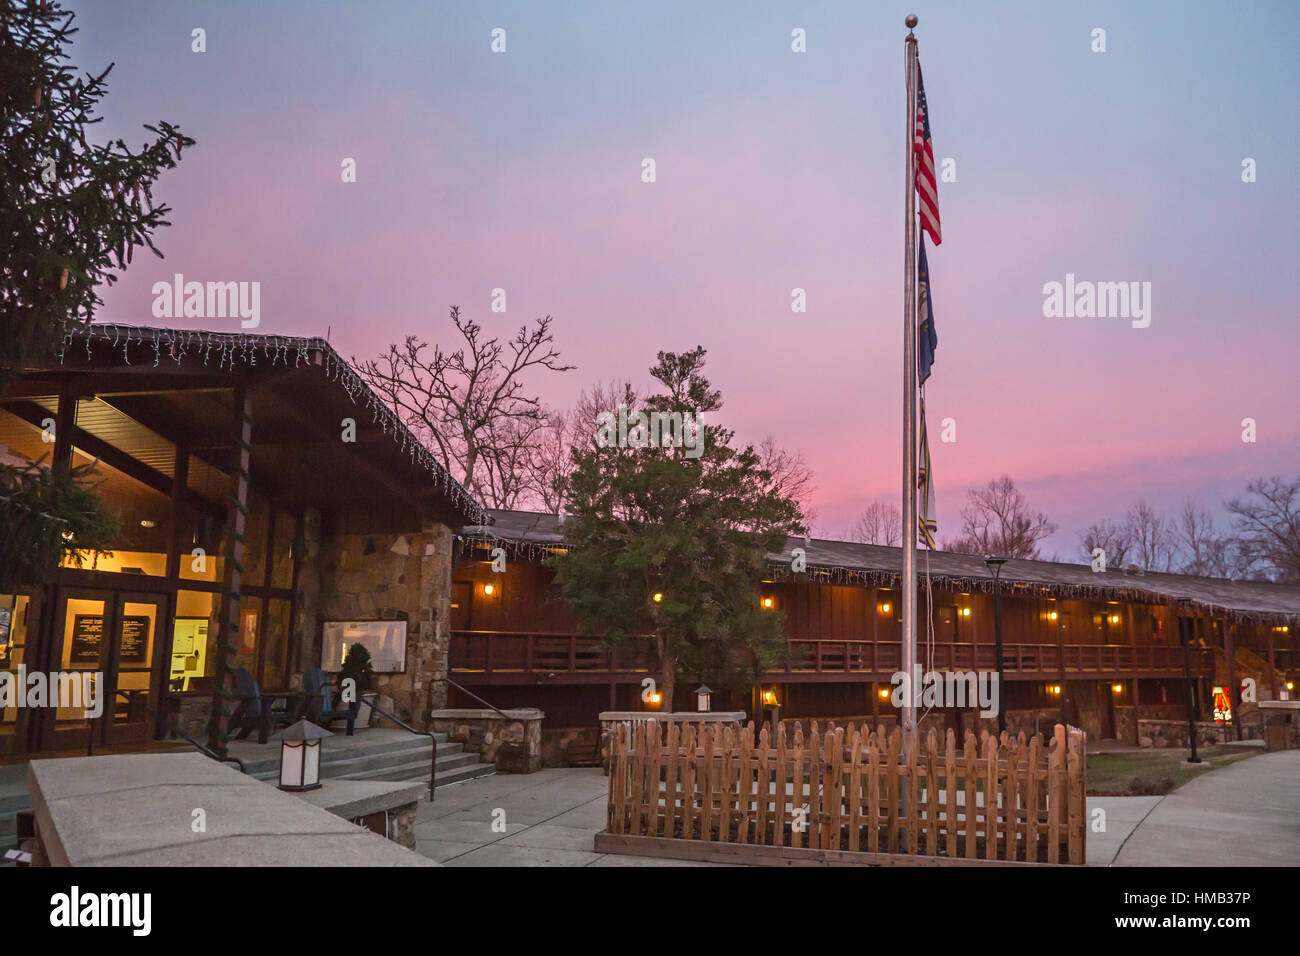 Olive Hill, Kentucky - The Lewis Caveland Lodge at Carter Caves State Resort Park. - Stock Image